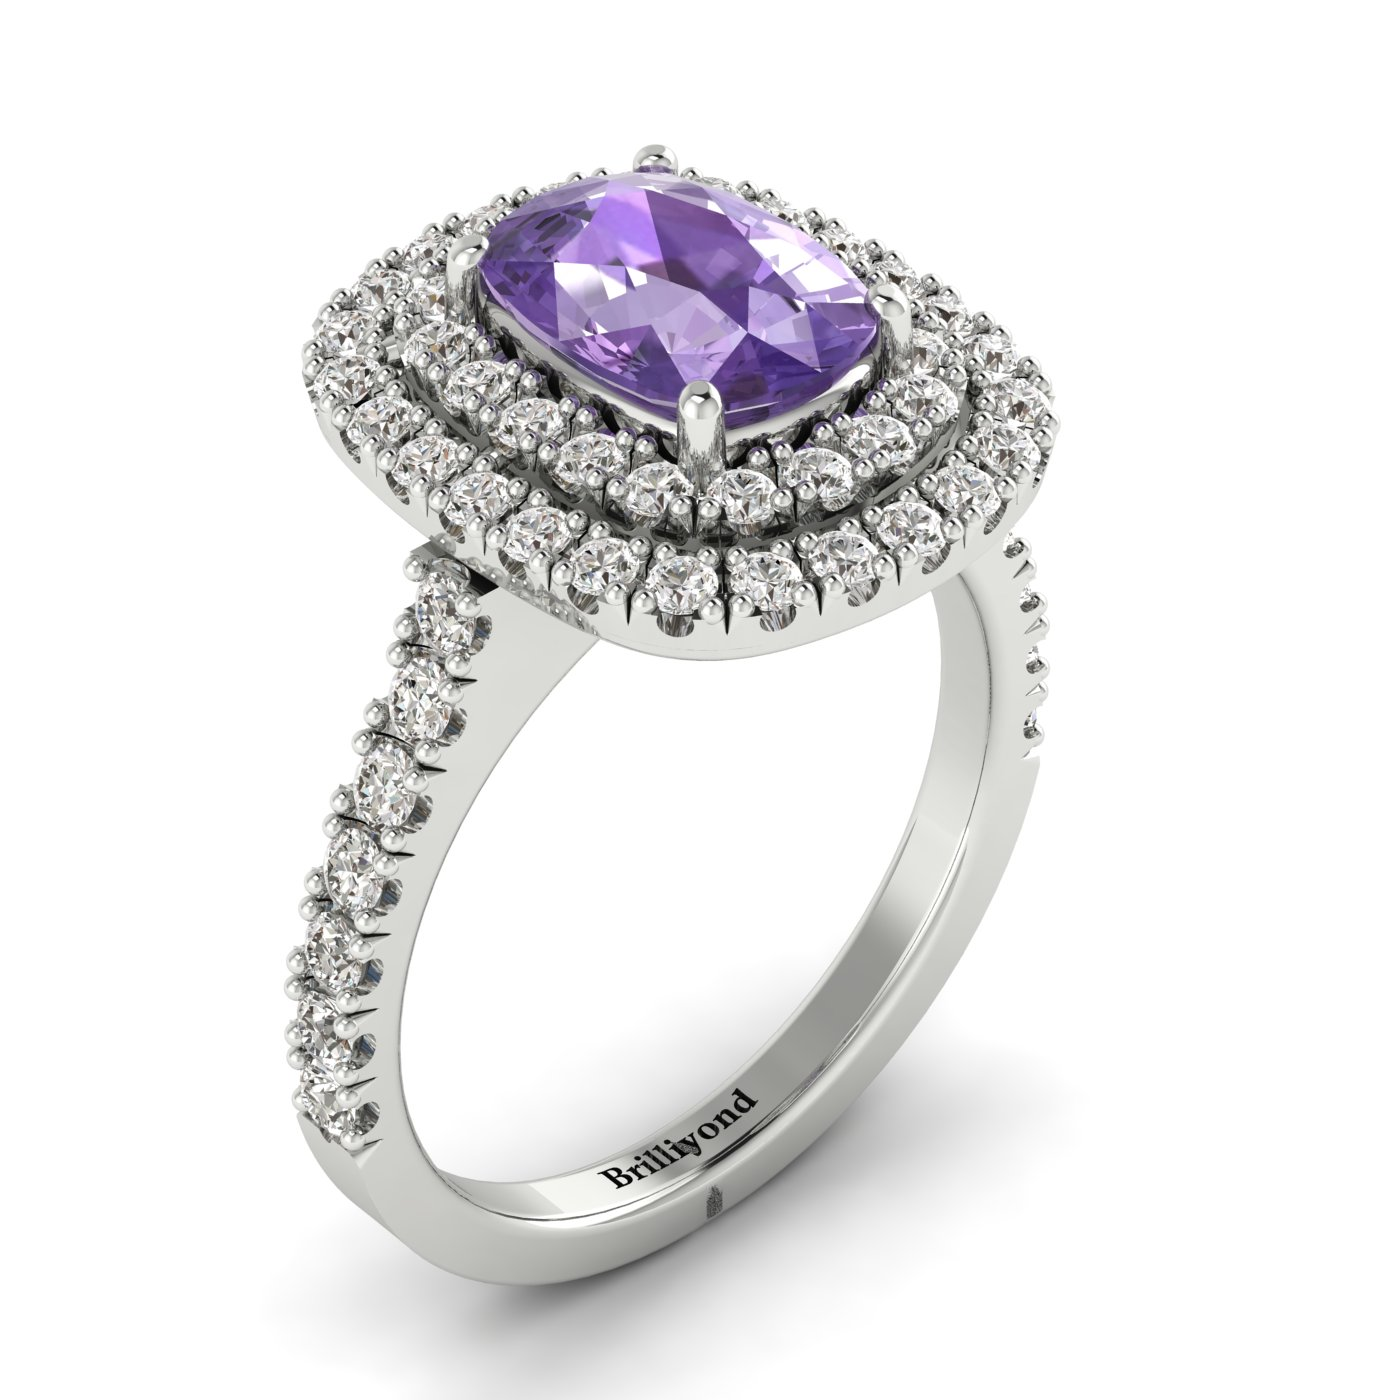 Double Halo CZ Amethyst Engagement Ring by Brilliyond Australia